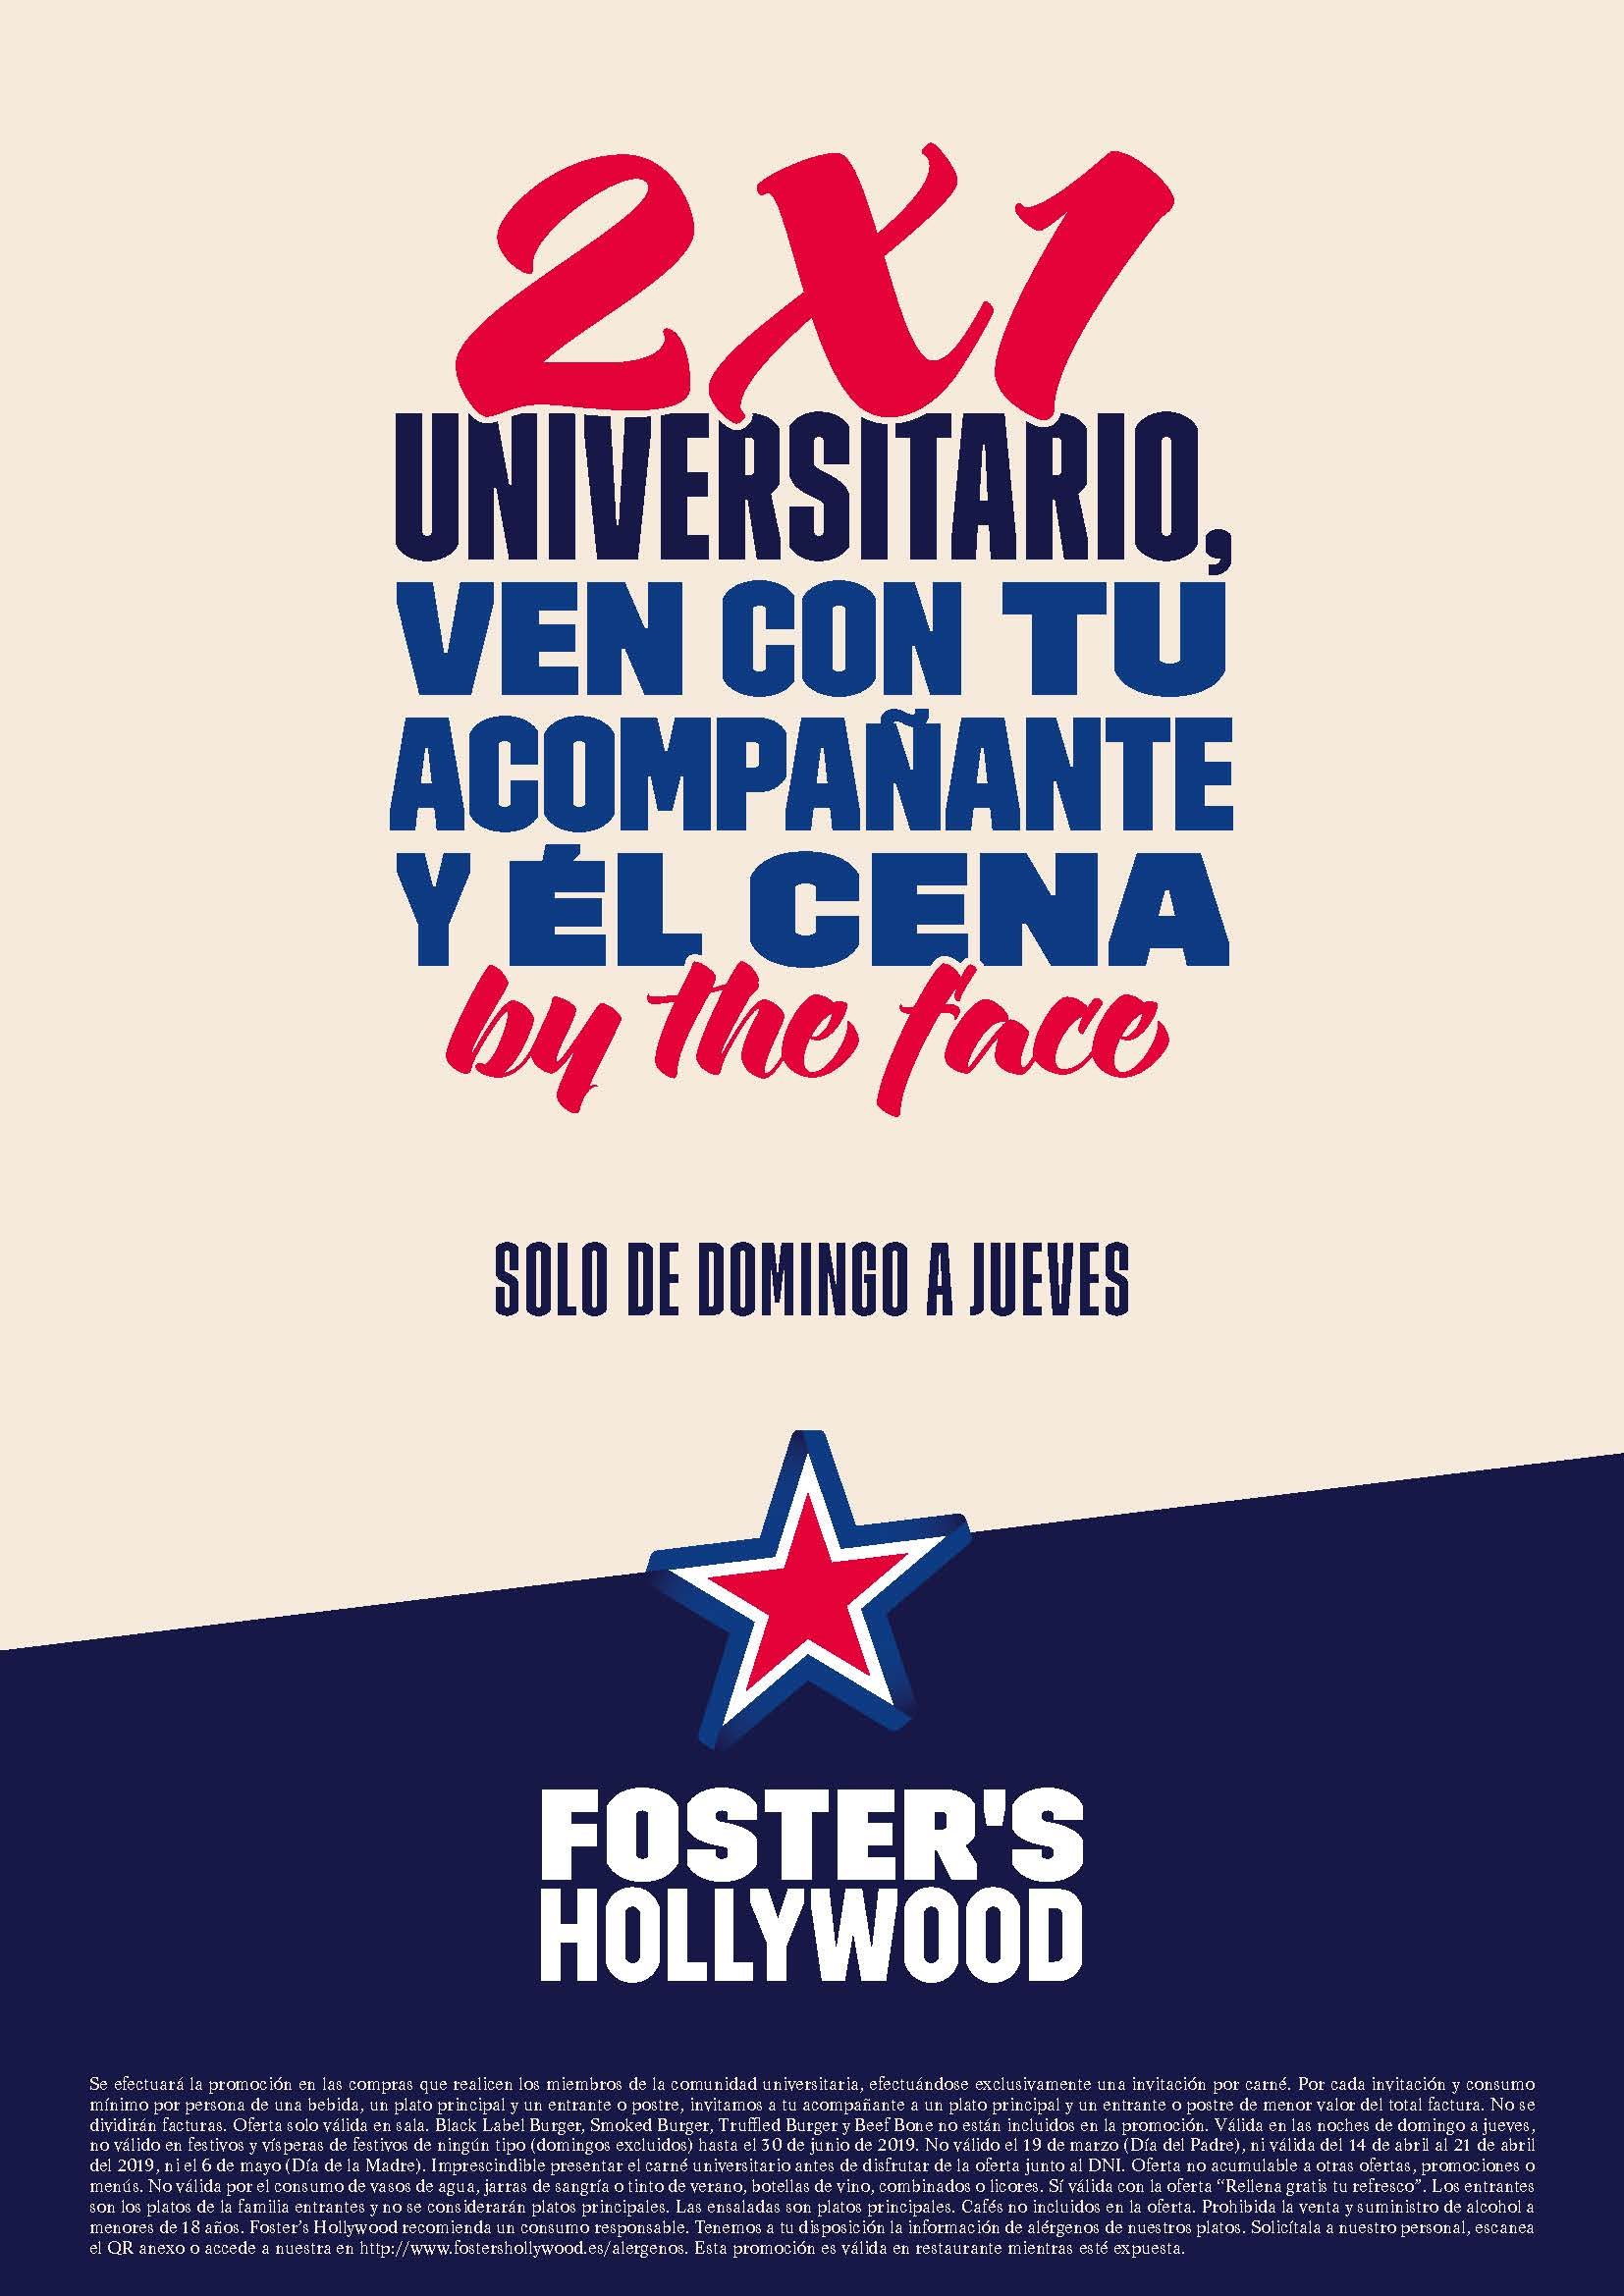 Oferta Foster's Hollywood 2x1